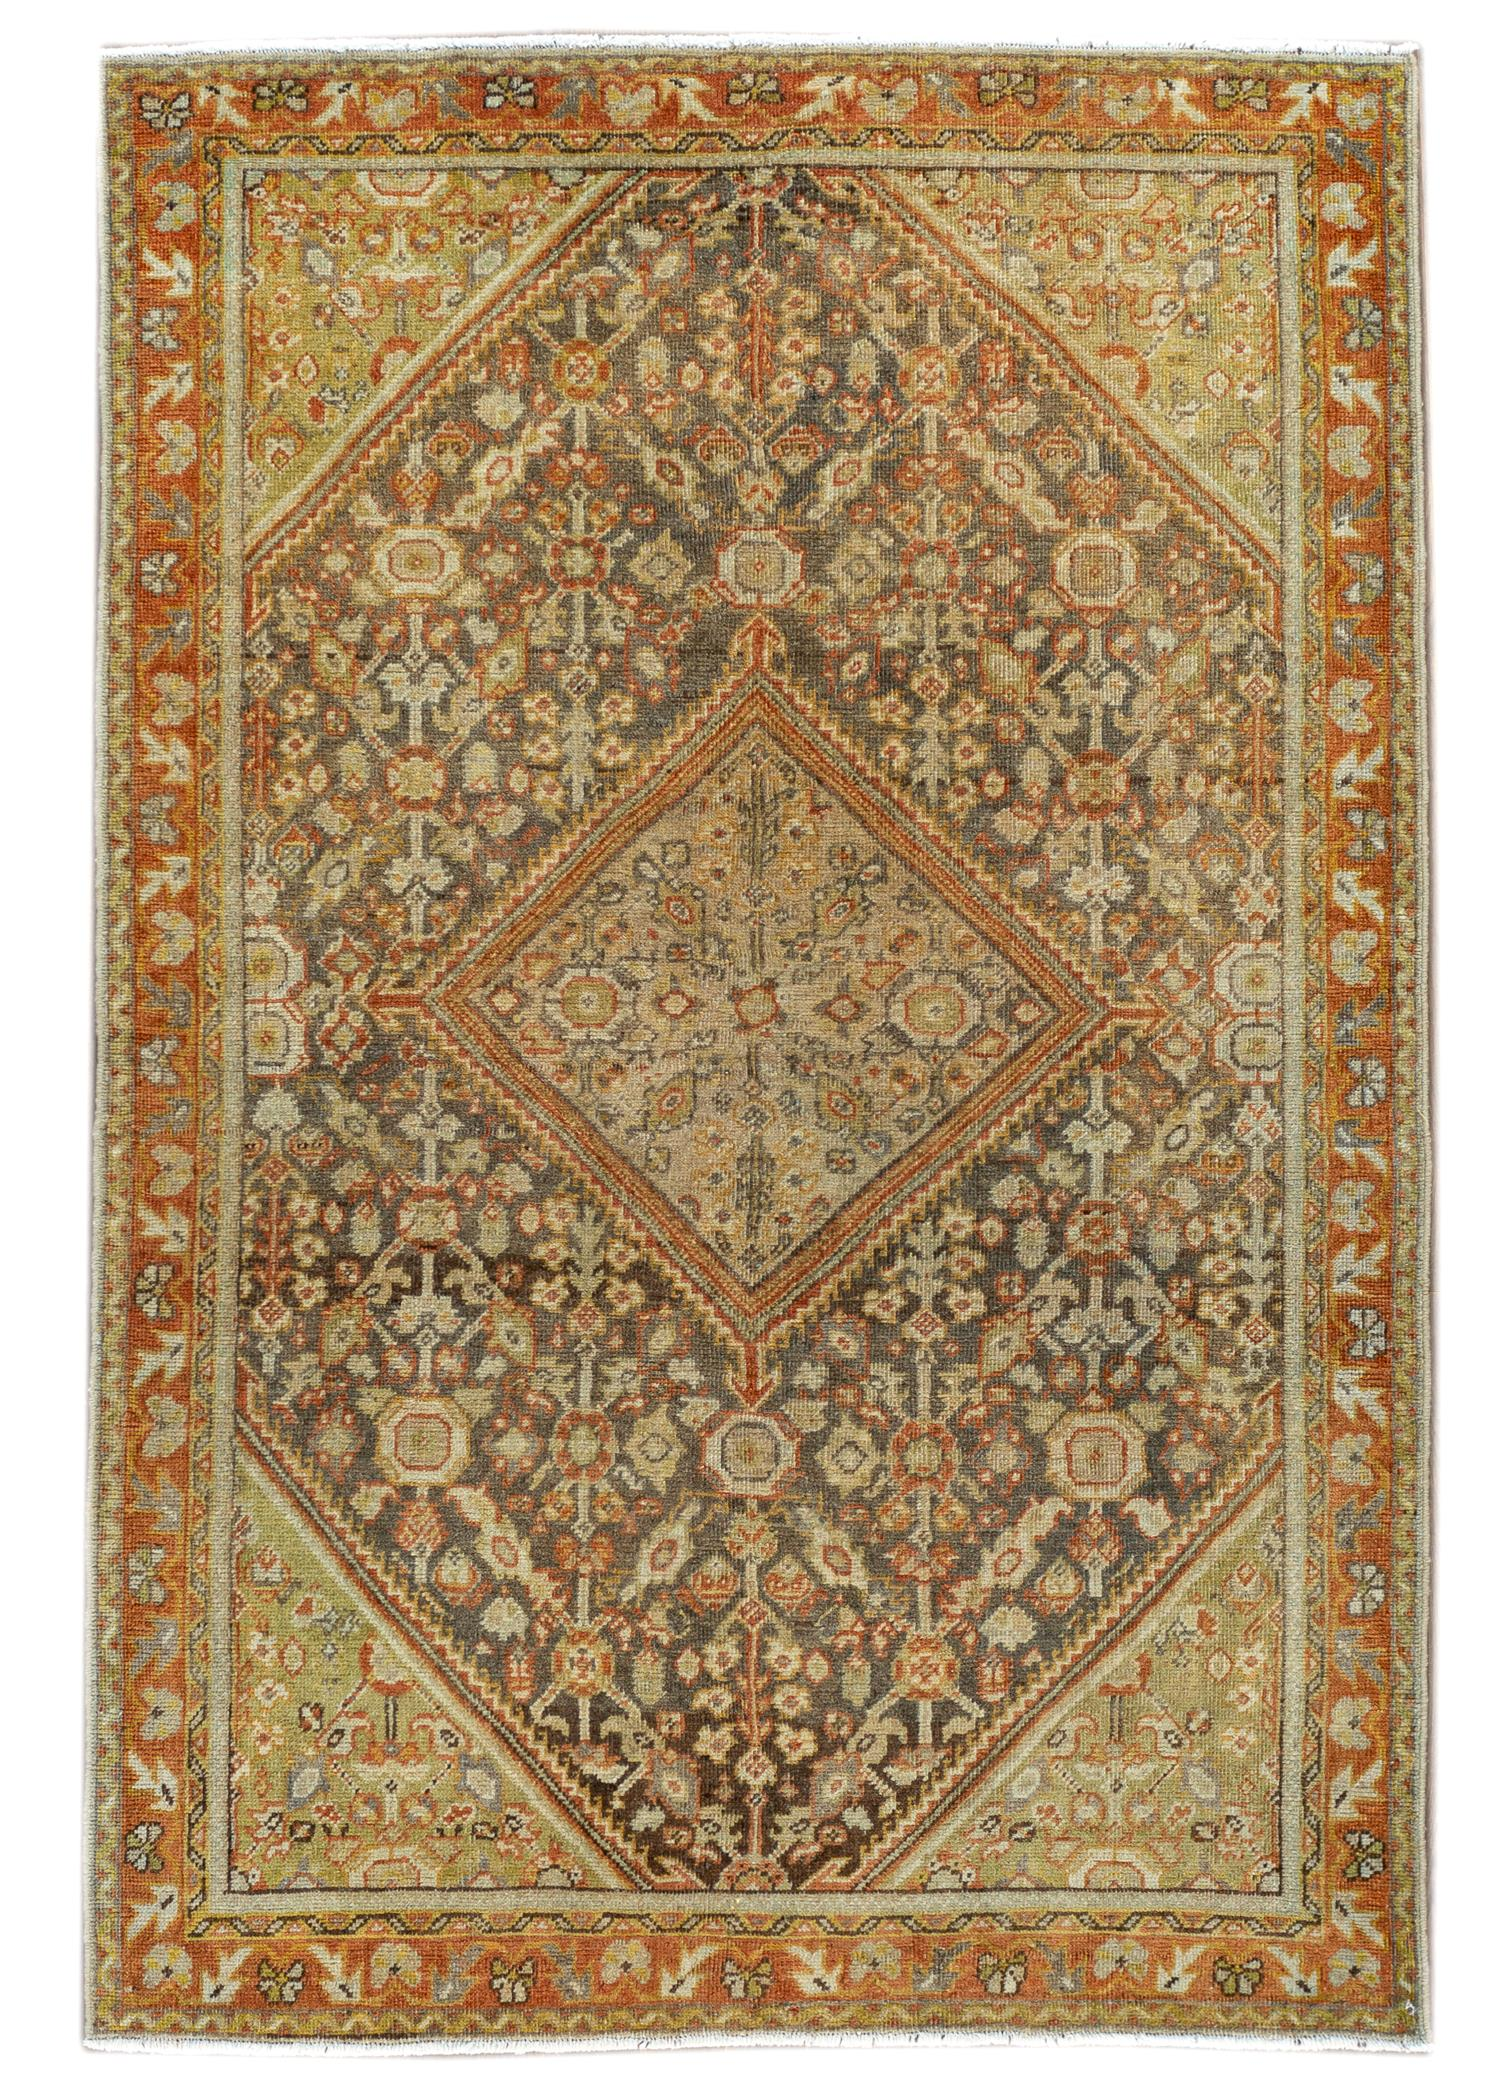 Antique Mahal Rug, #10235264, 5X7